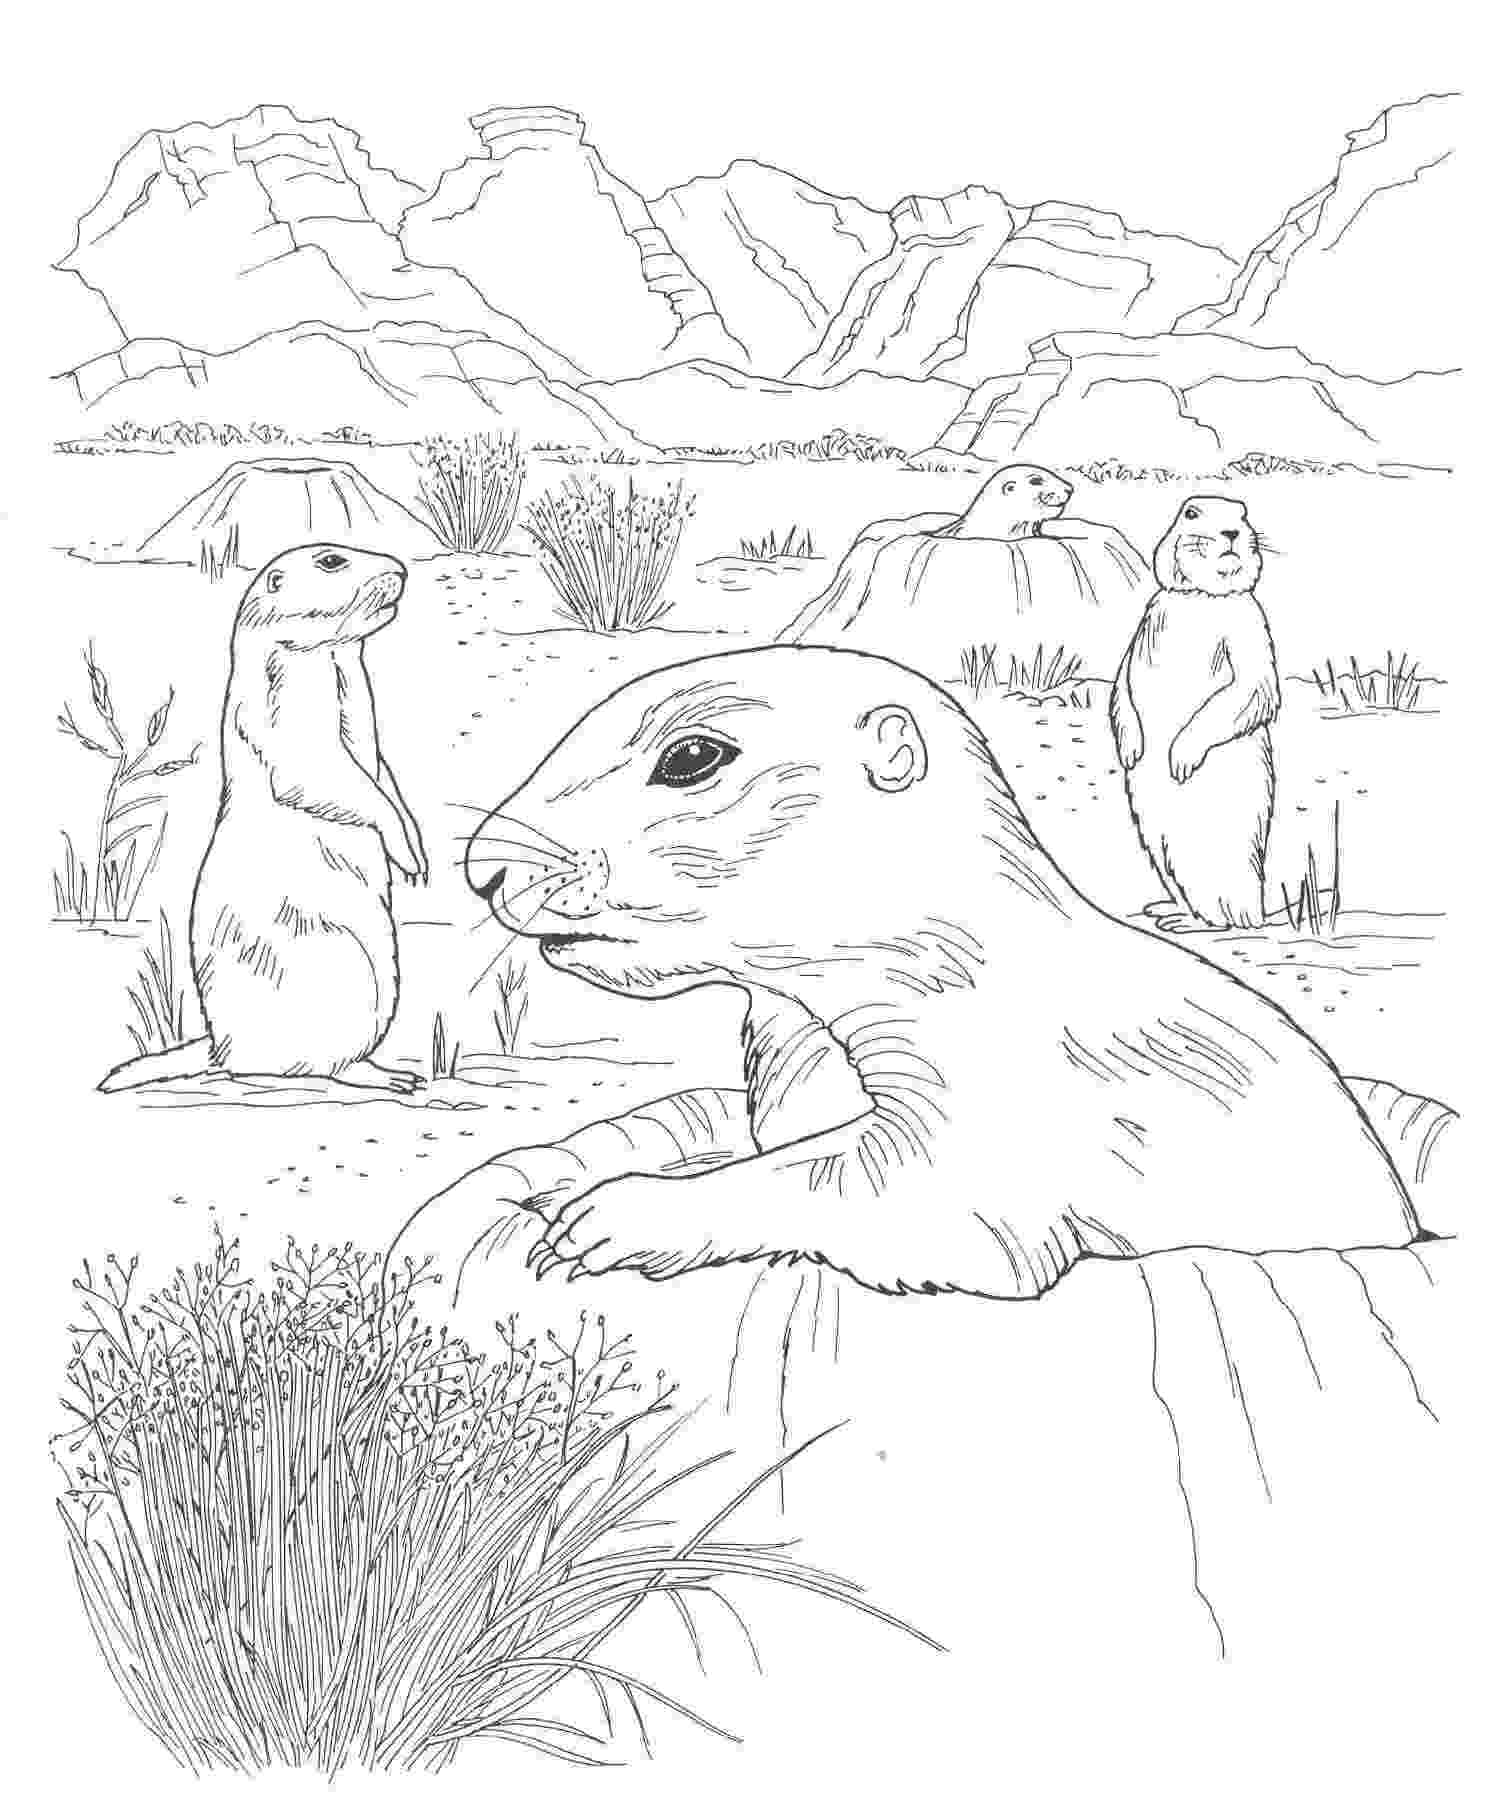 free printable coloring pages of desert animals printable coloring pages of desert animals coloring page printable desert animals free coloring of pages